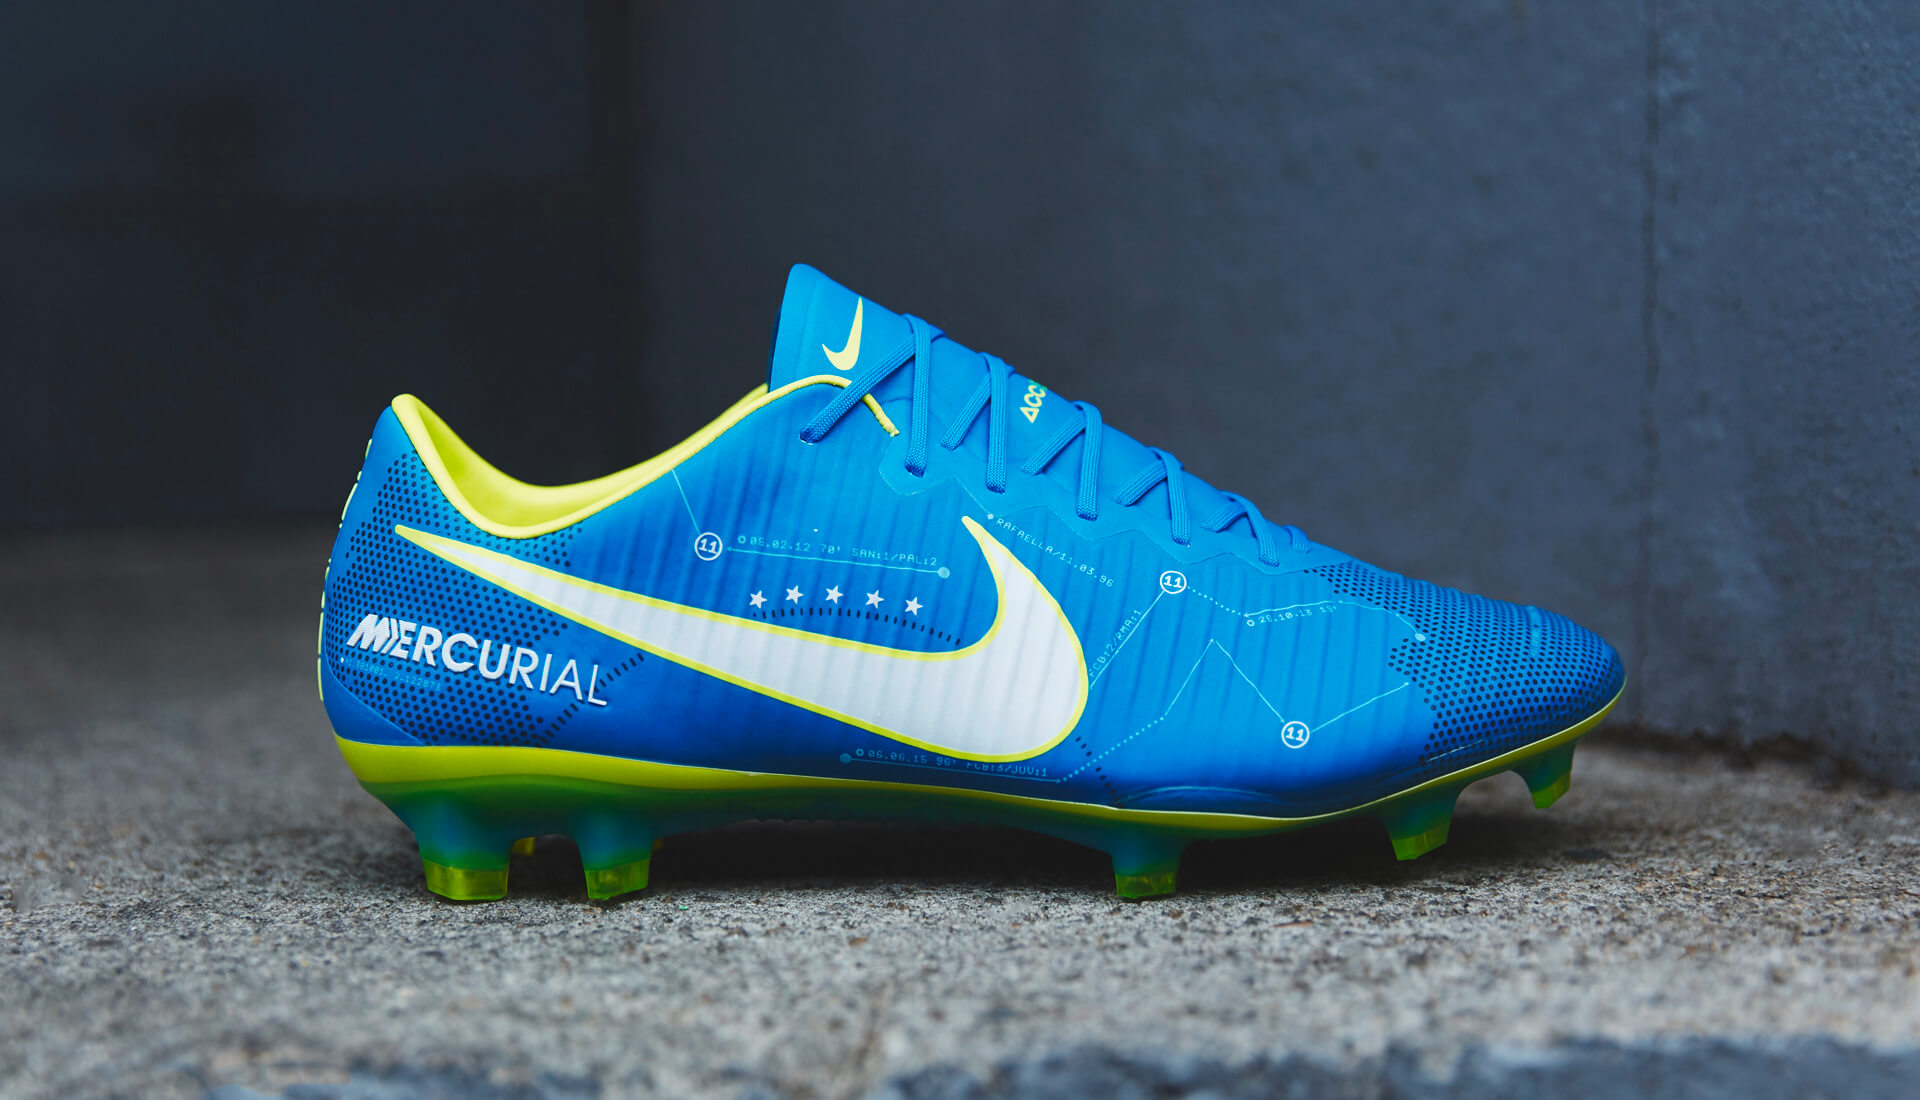 reputable site c29ba 1612d Nike Launch Signature Neymar